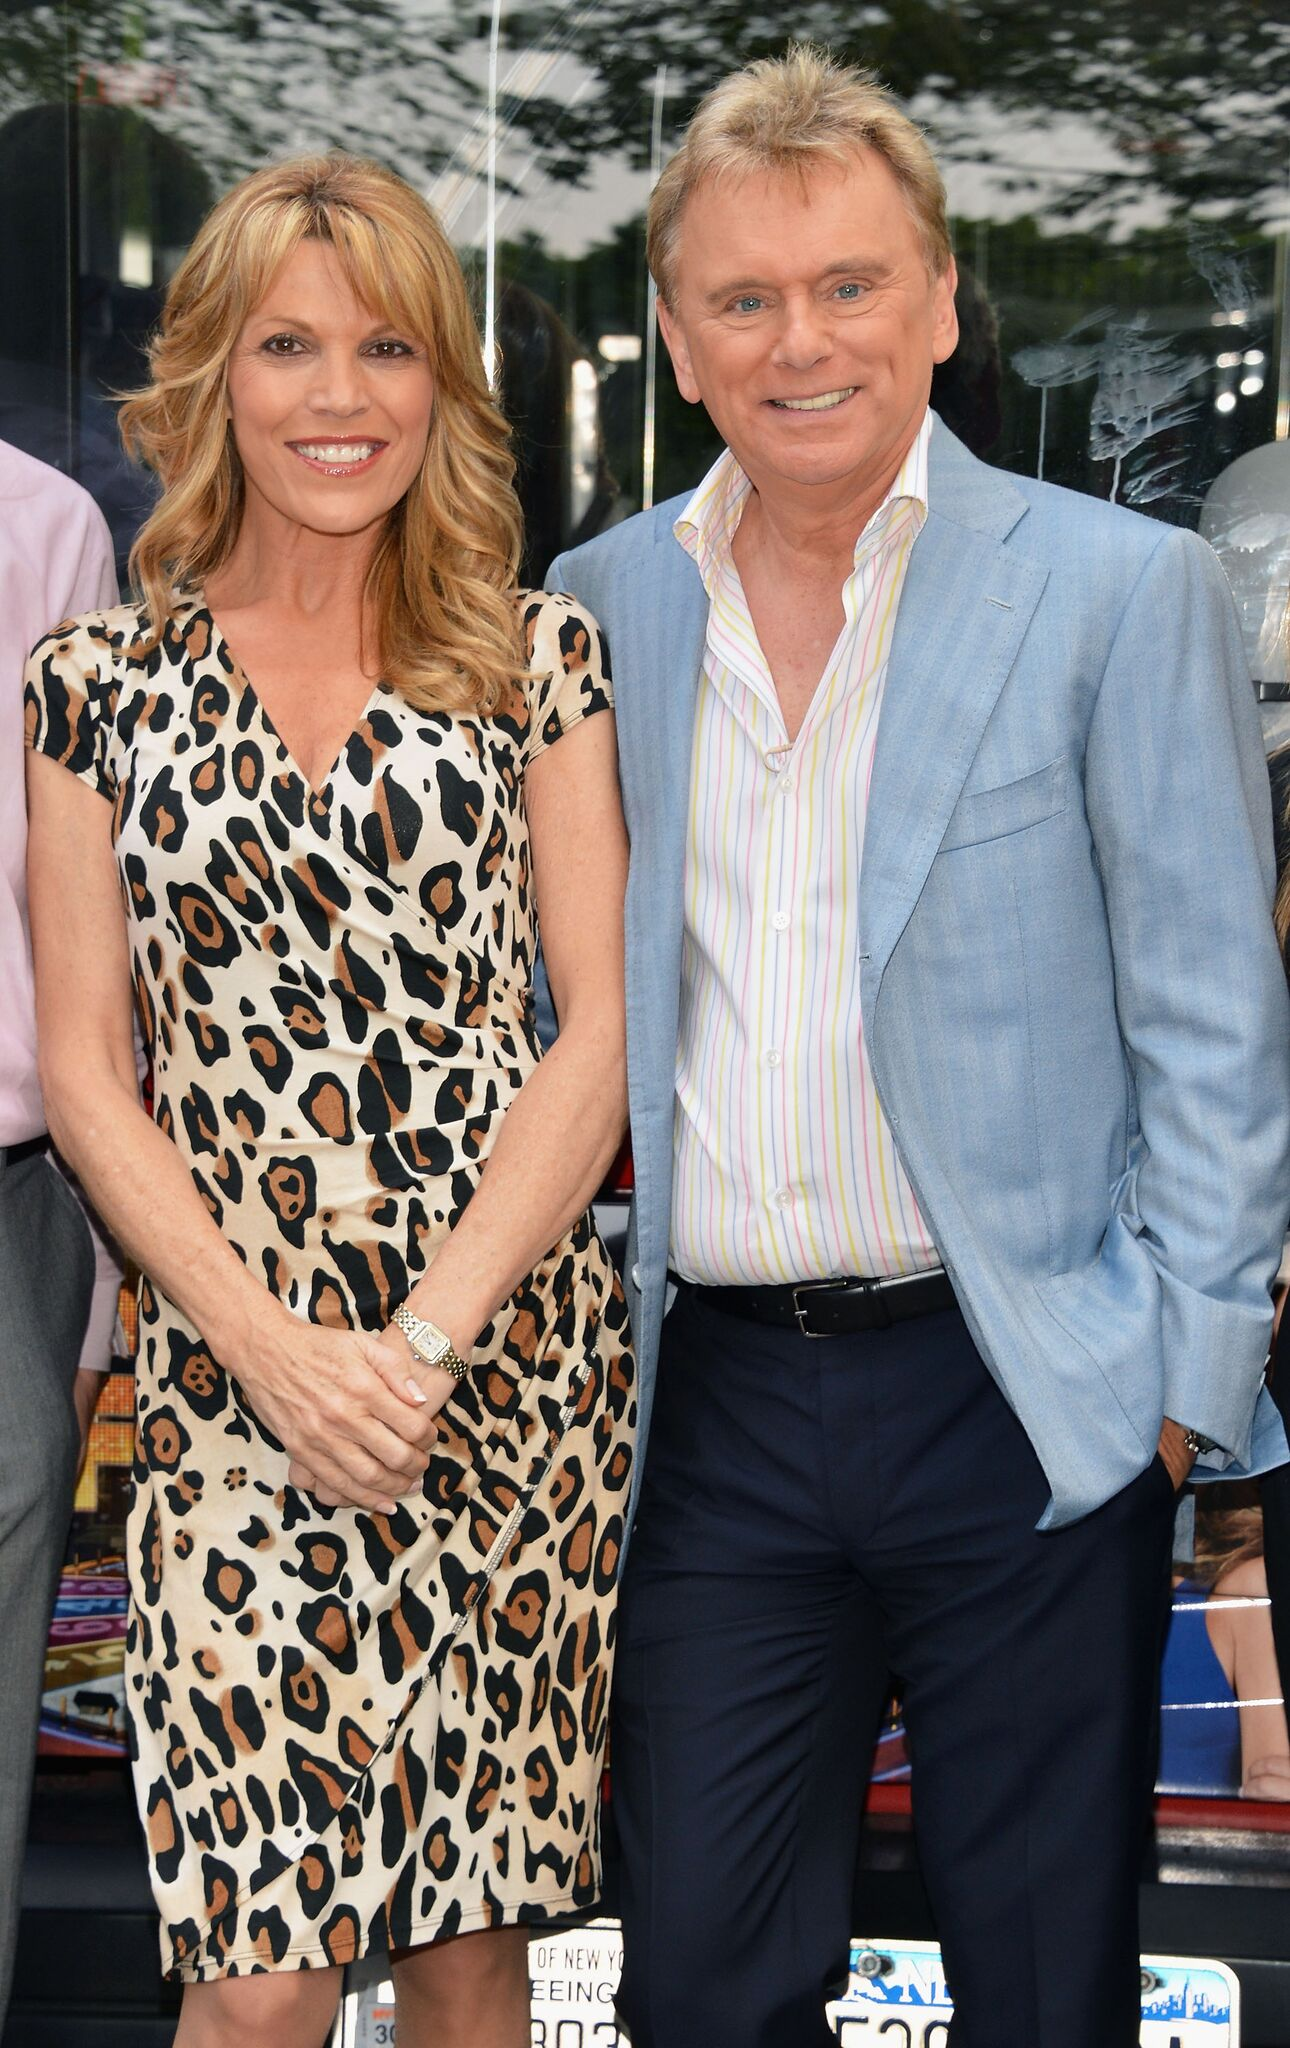 The hosts of Wheel of Fortune Vanna White (L) and Pat Sajak are honored by Gray Line New York's Ride Of Fame Campaign in Central Park l Getty Images